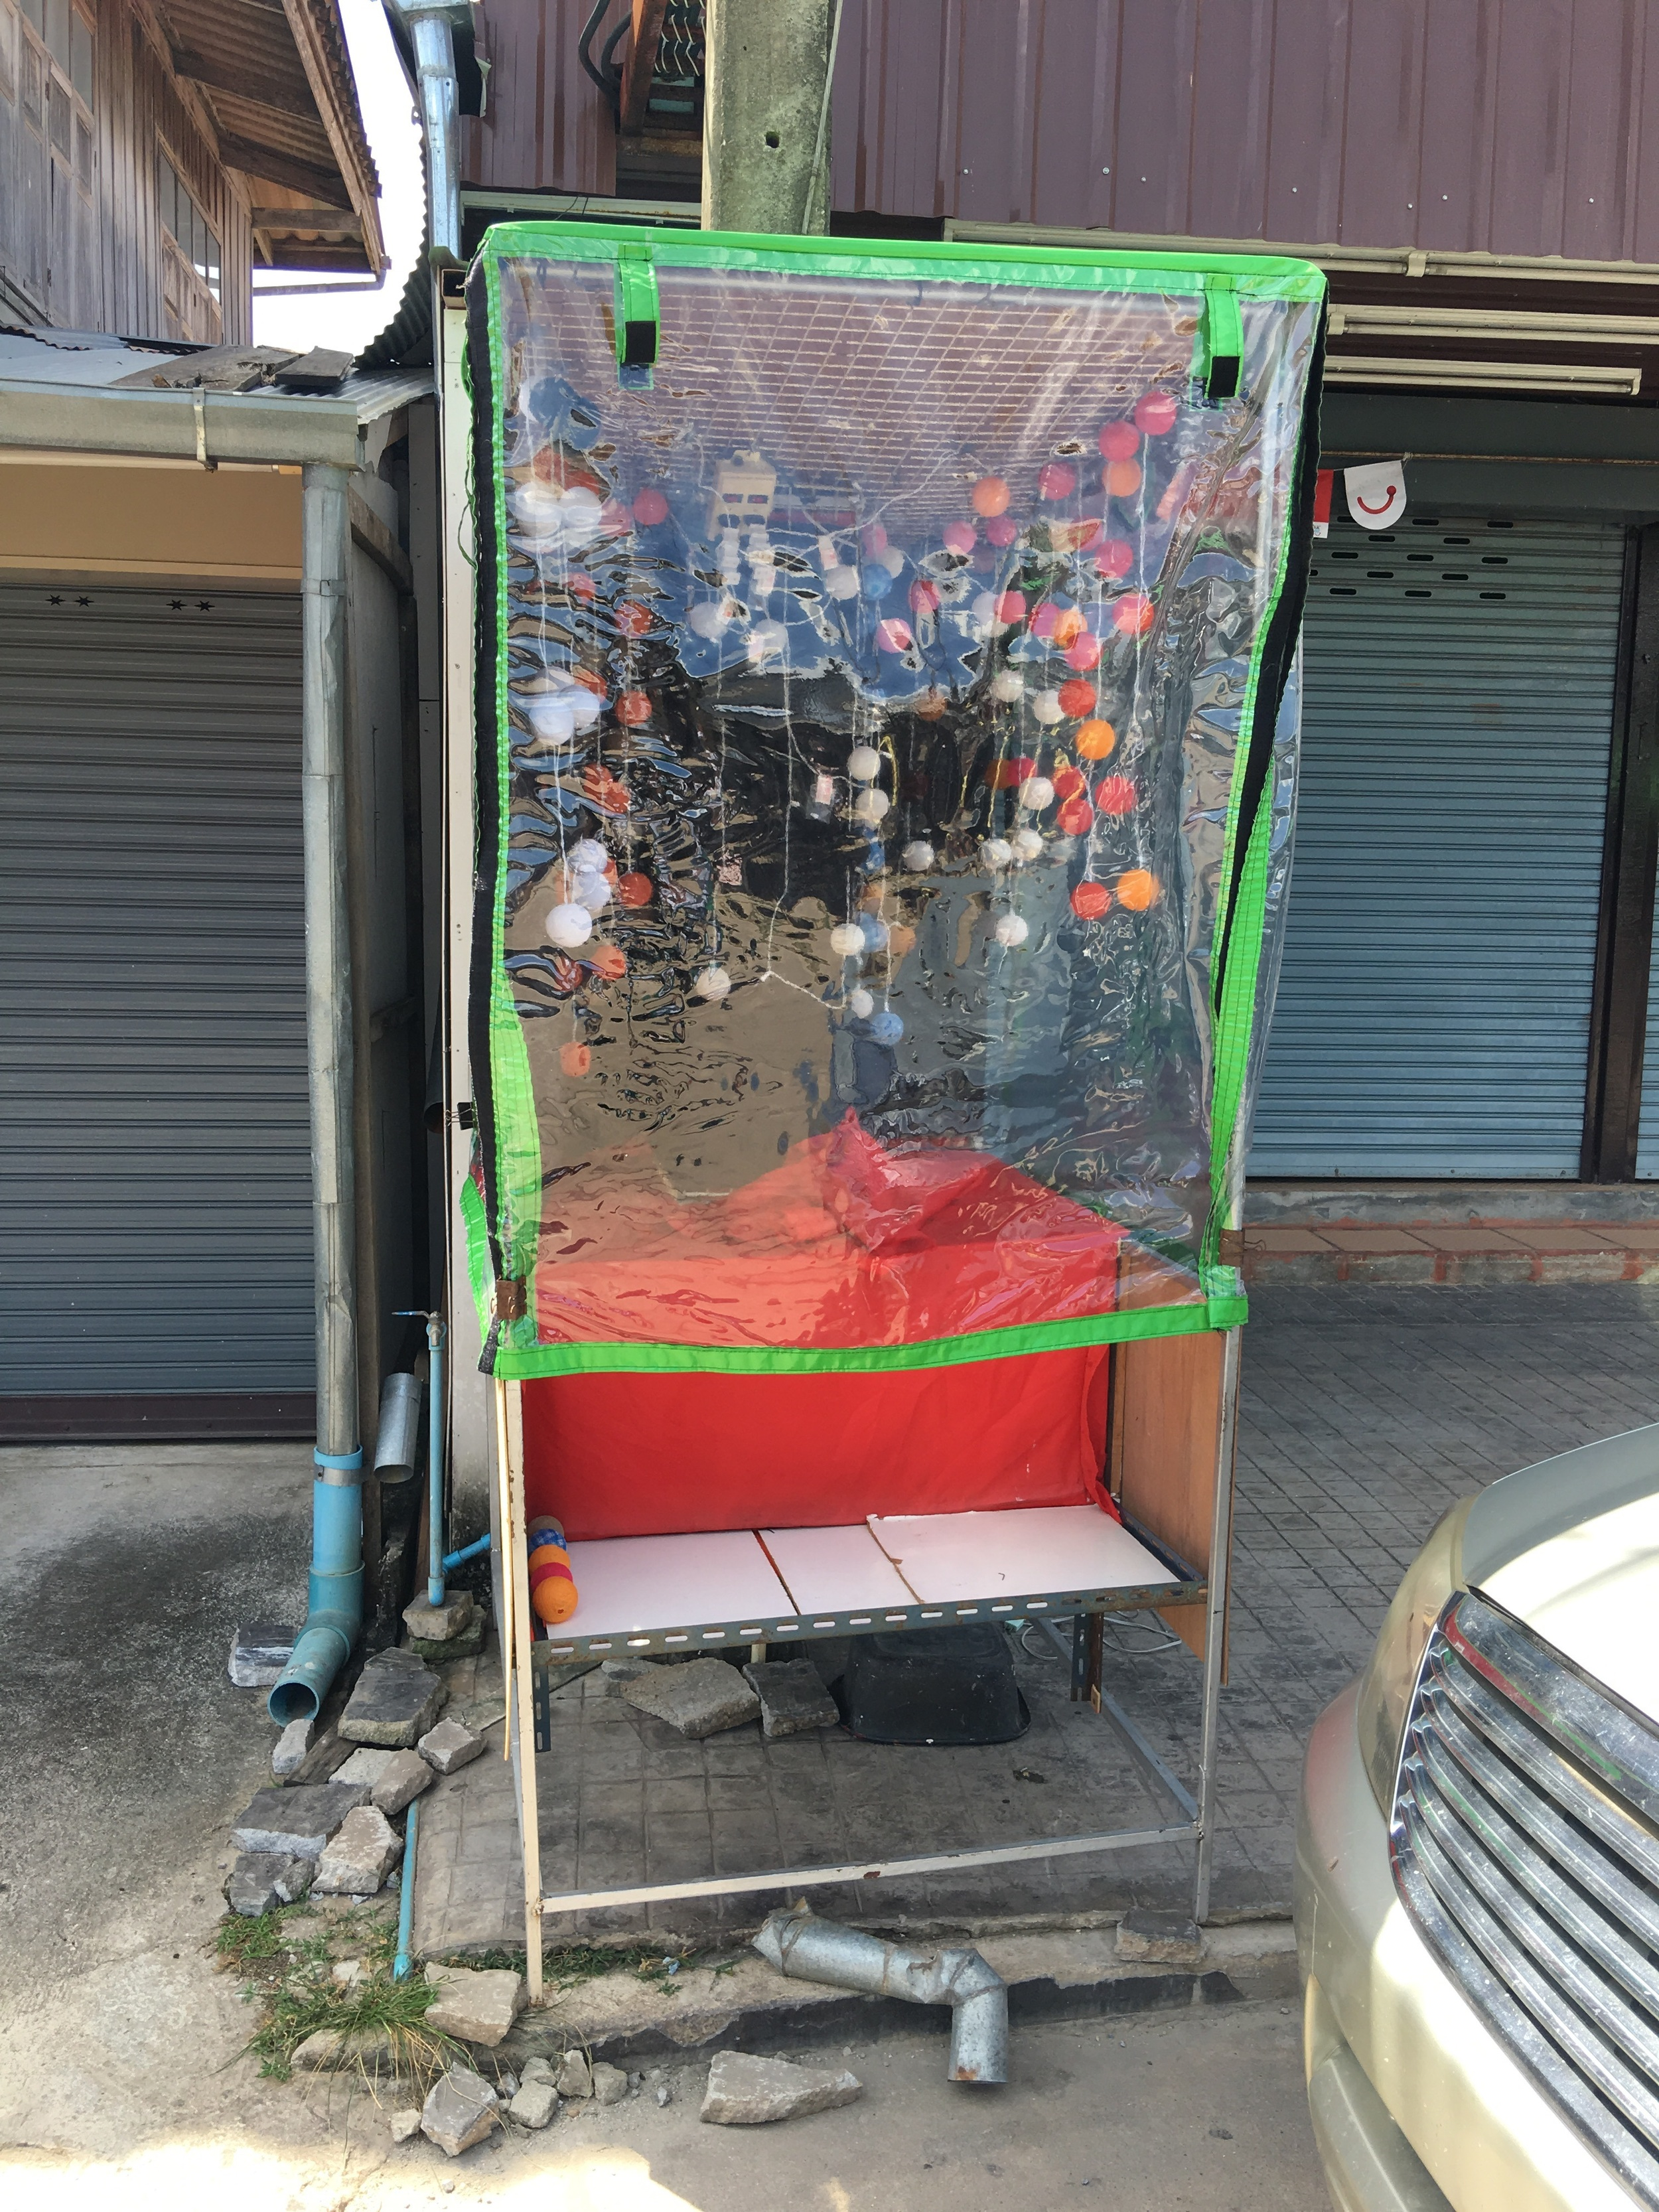 A hilarious photo booth i wish i could see it at night